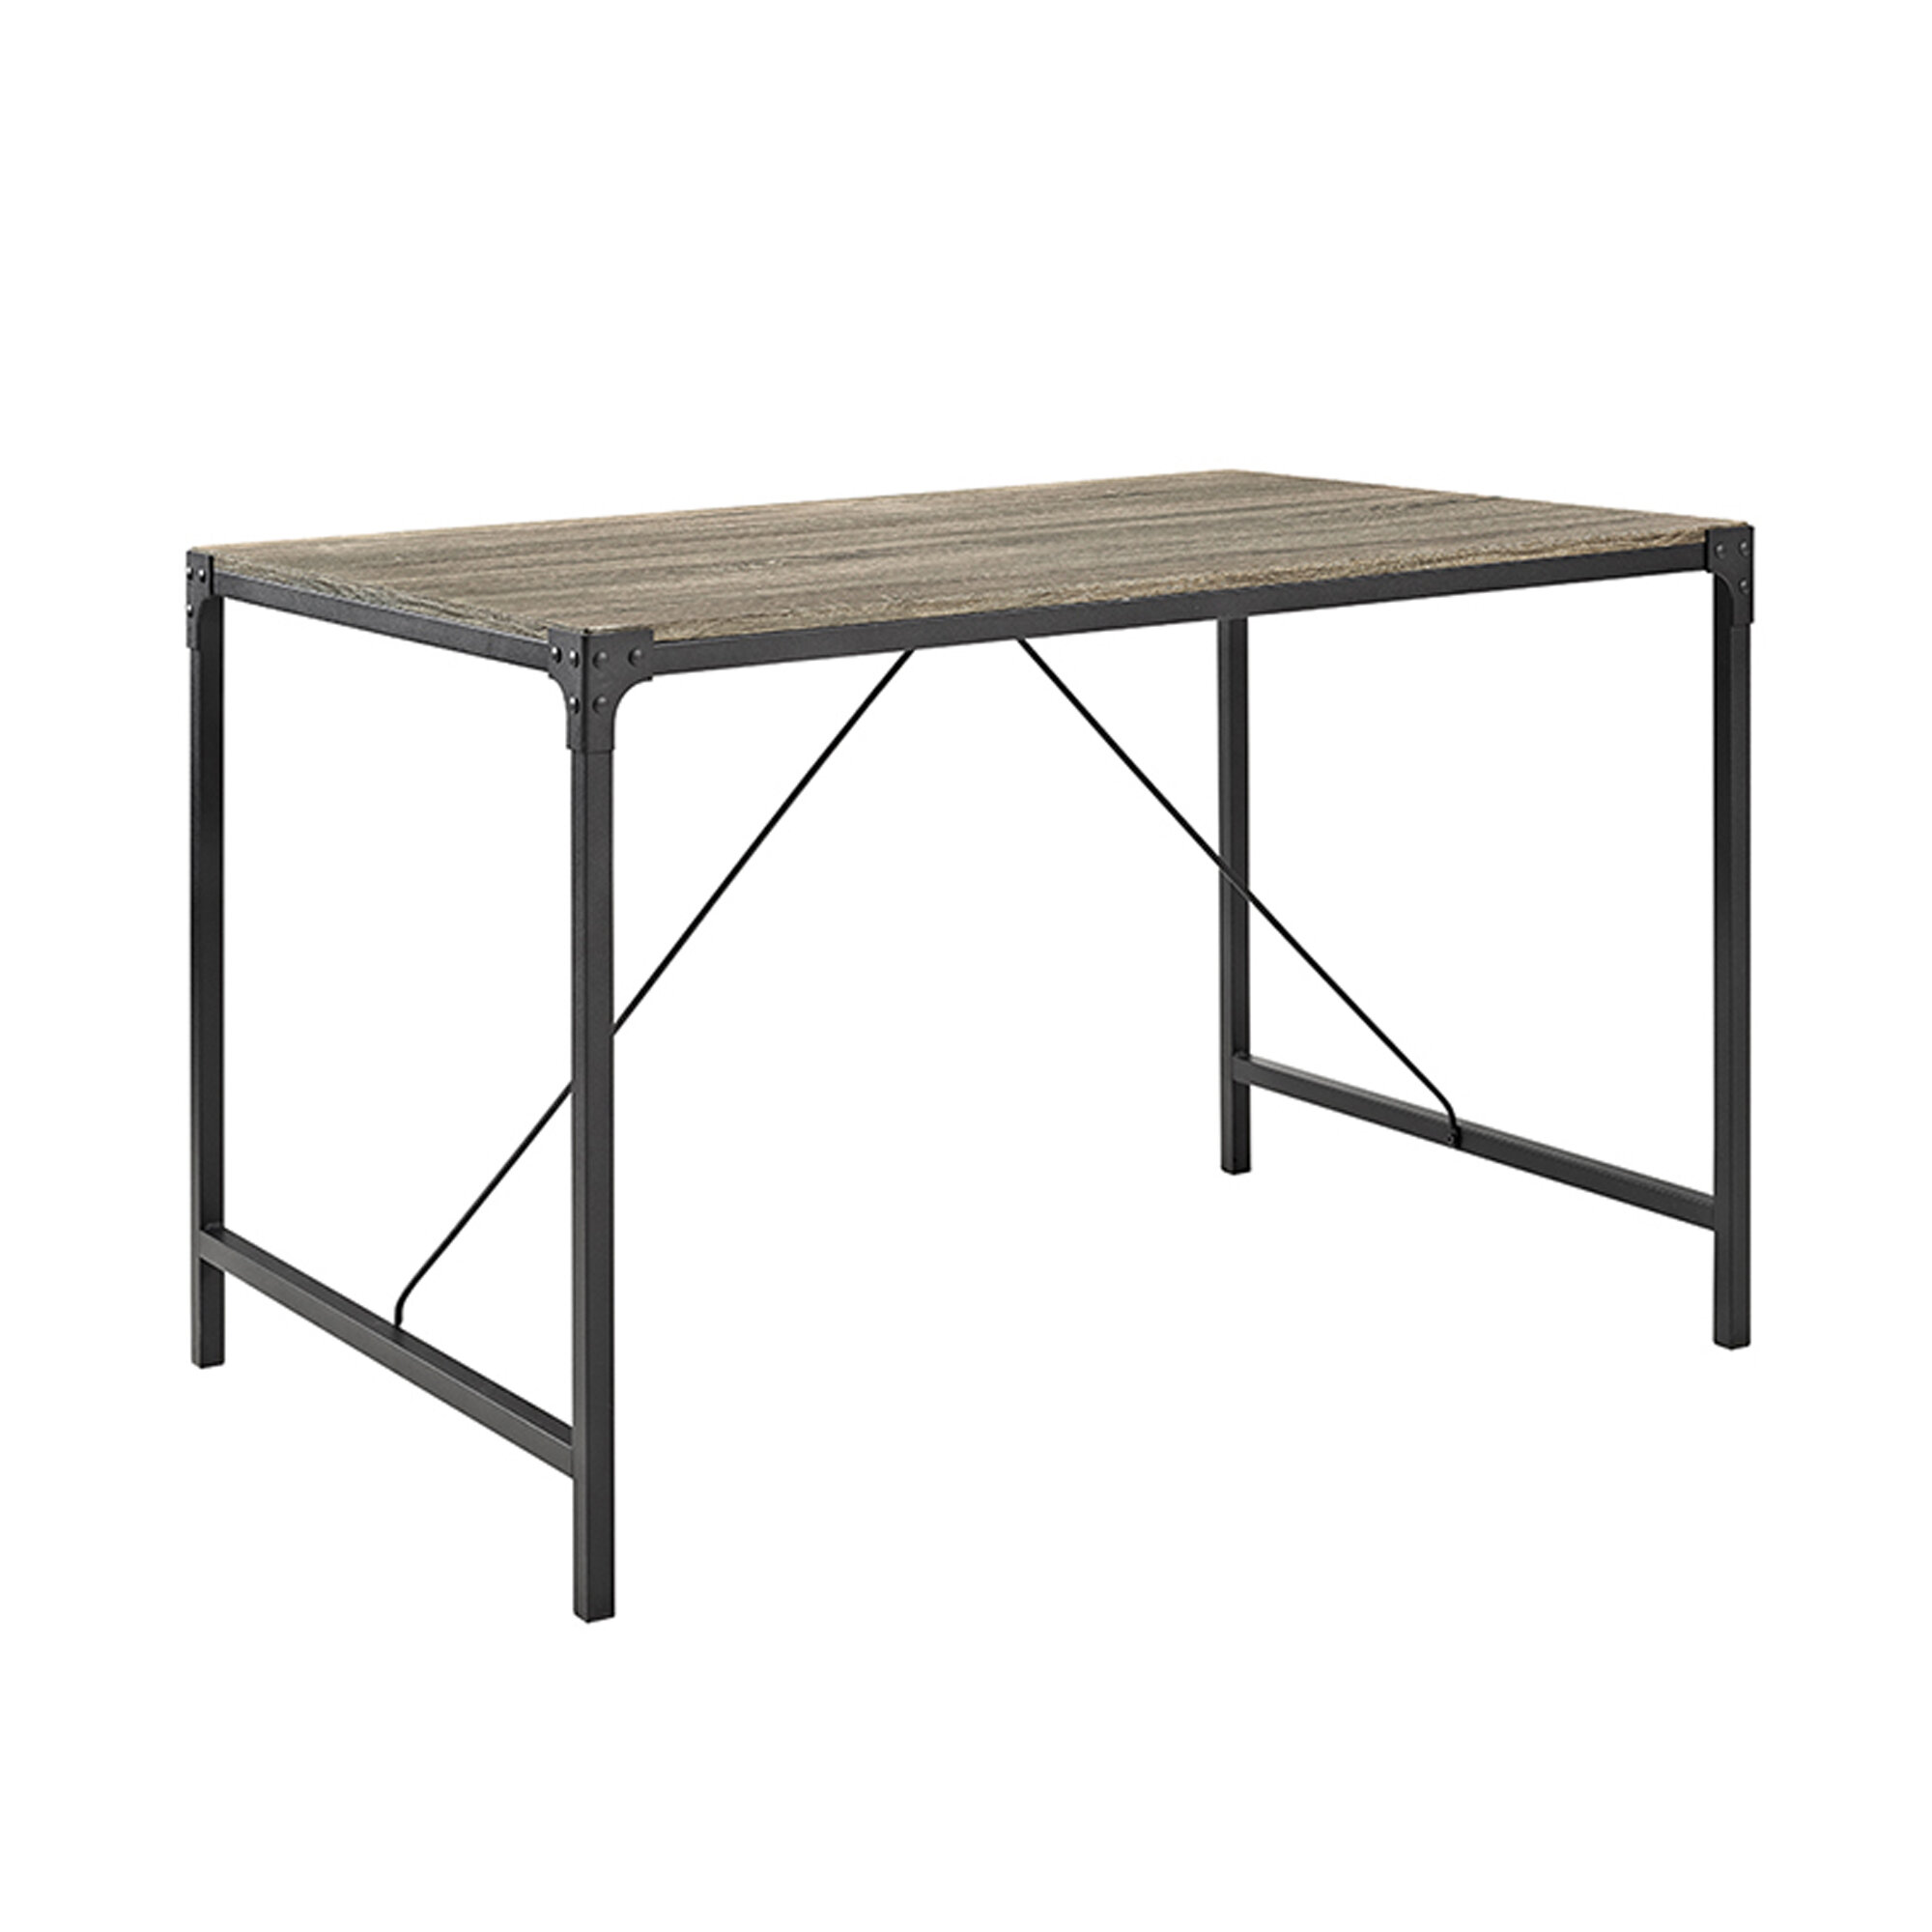 Laurel Foundry Madelyn Angle Iron And Wood Dining Table Reviews Wayfair Co Uk